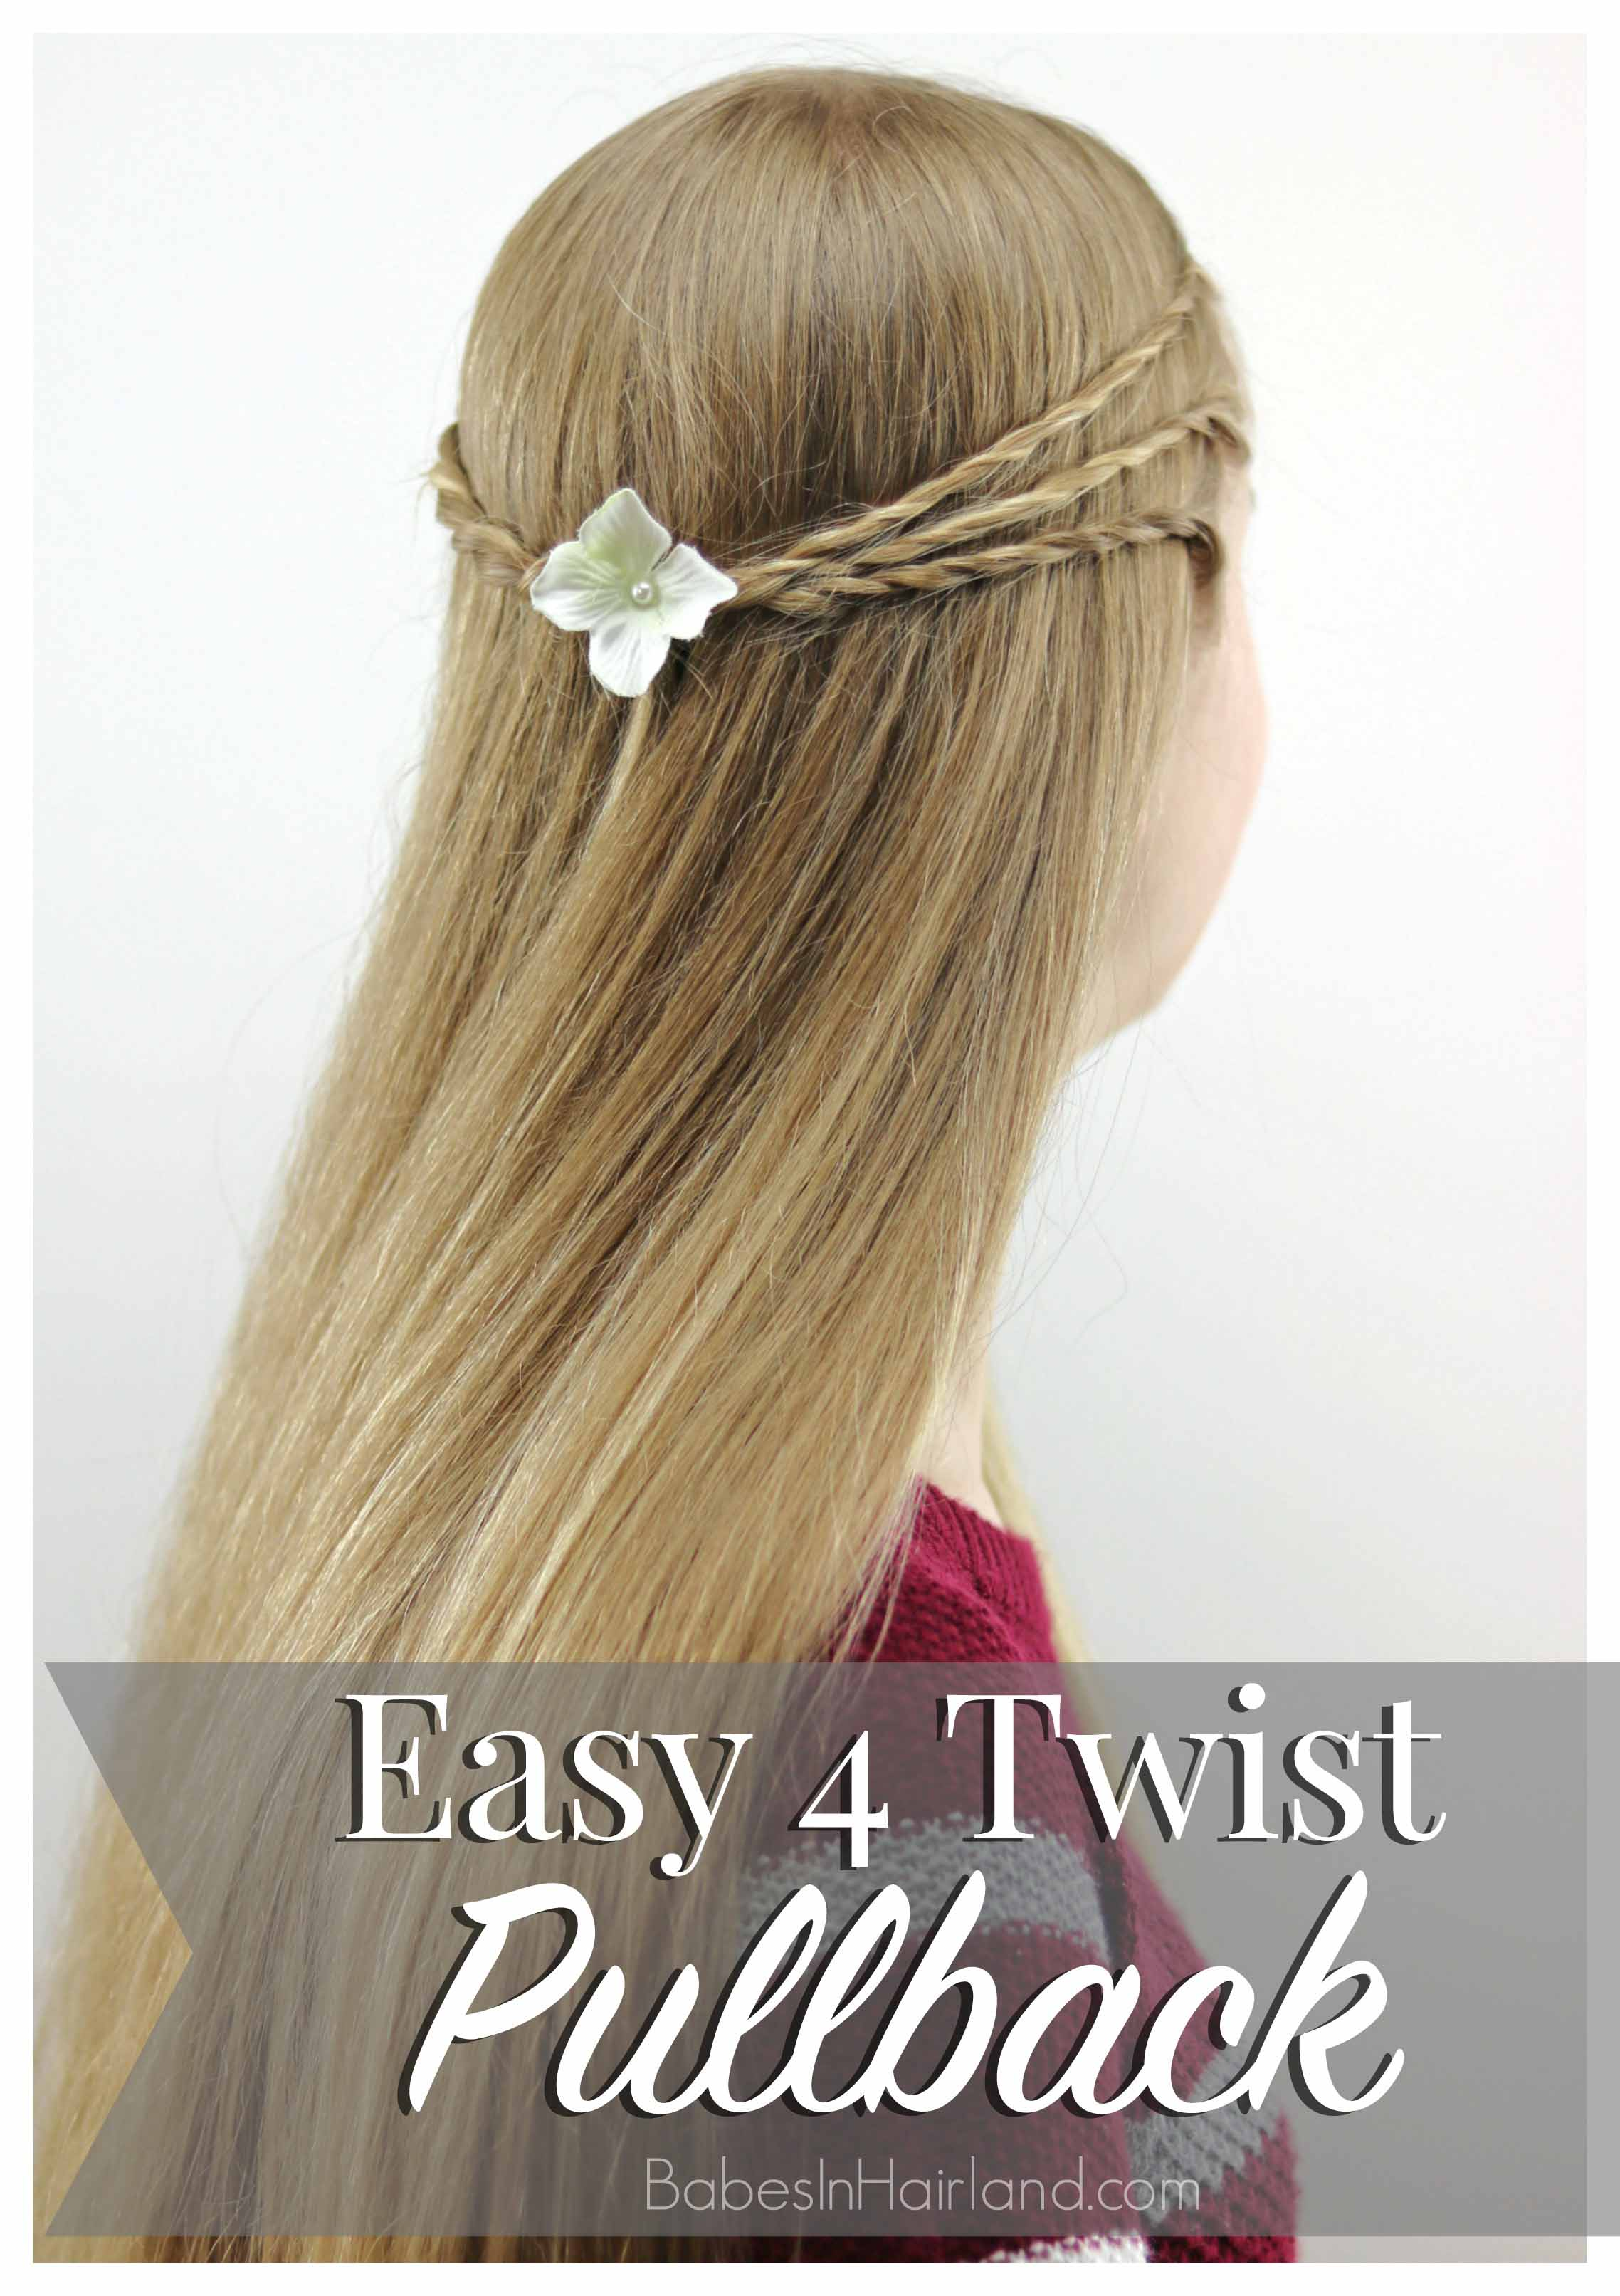 Running late or don't want to spend lots of time on your hair? This easy 4 Twist Pullback hairstyle done by my 14 year old is just what you're looking for! BabesInHairland.com | teen hair | rope twists |